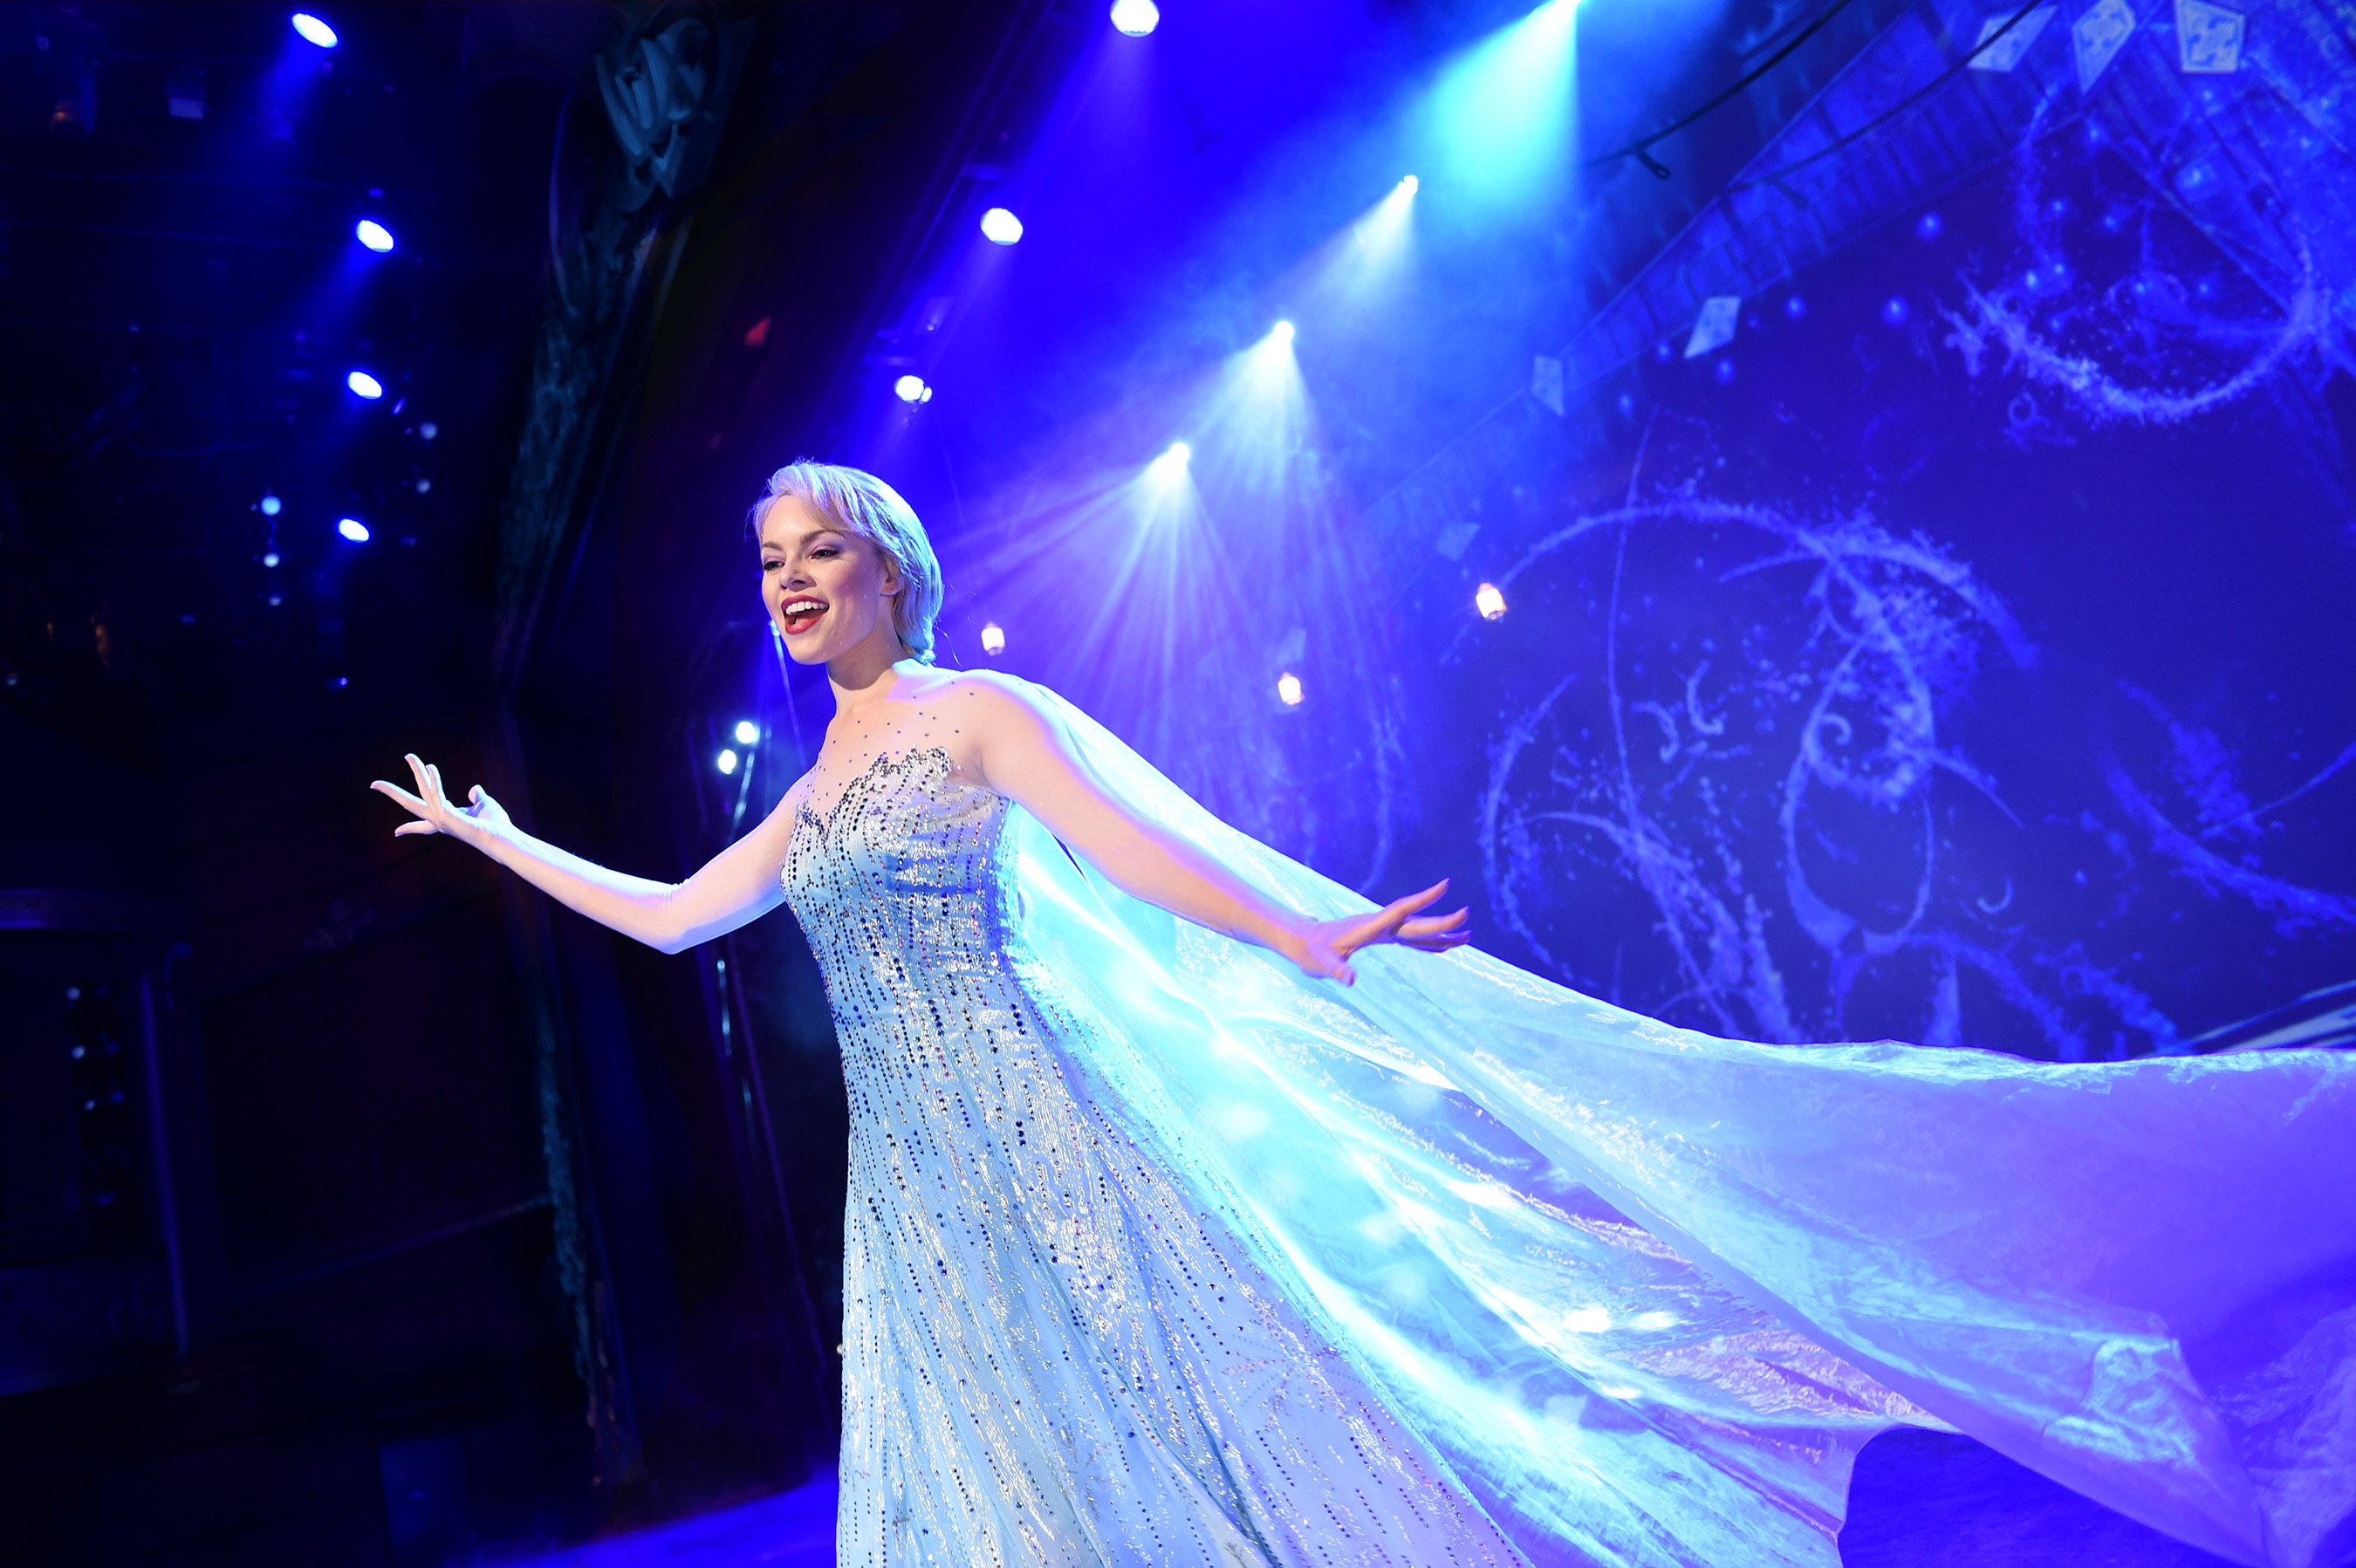 New Frozen Musical Coming To Disney Cruise Line This Fall